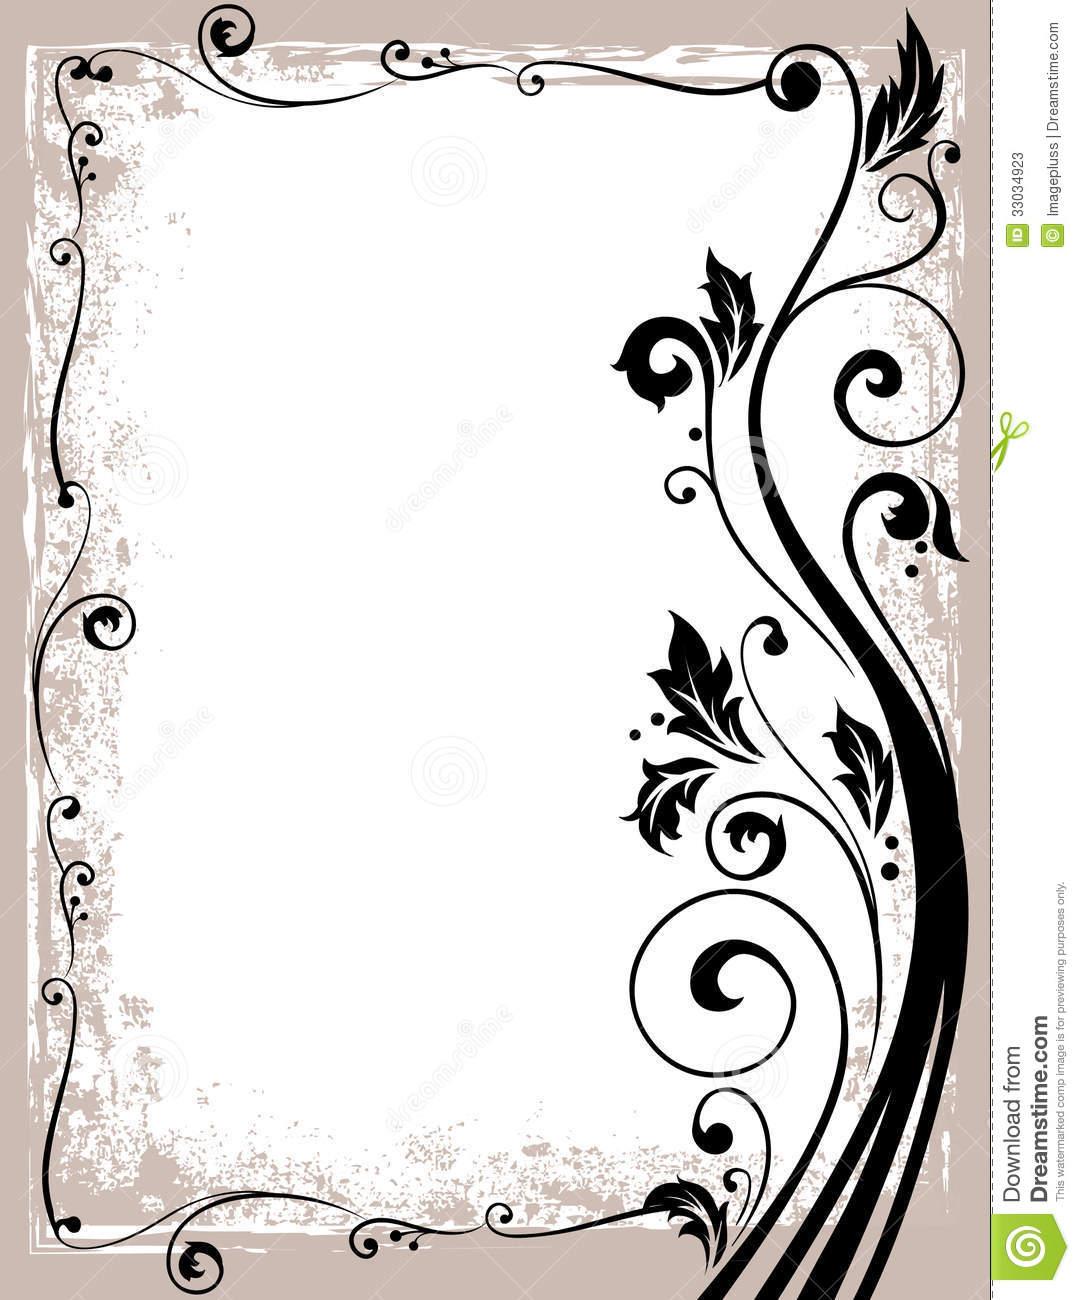 Ornate Floral Frame Stock Photos - Image: 33034923